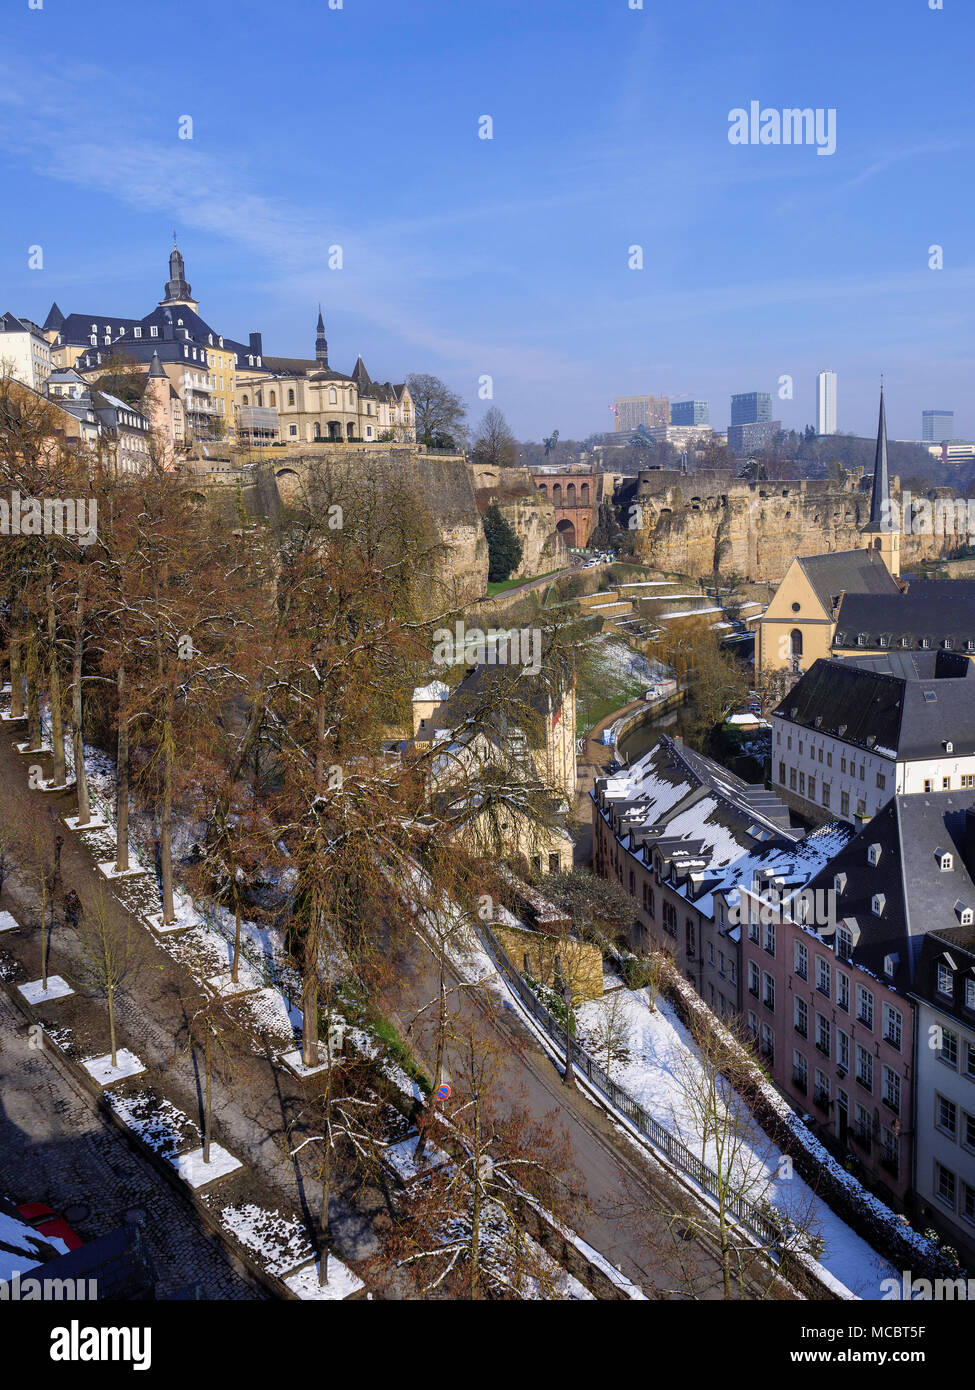 Hictoric city, Grand and European center, Luxembourg City, Europe, UNESCO Heritage - Stock Image